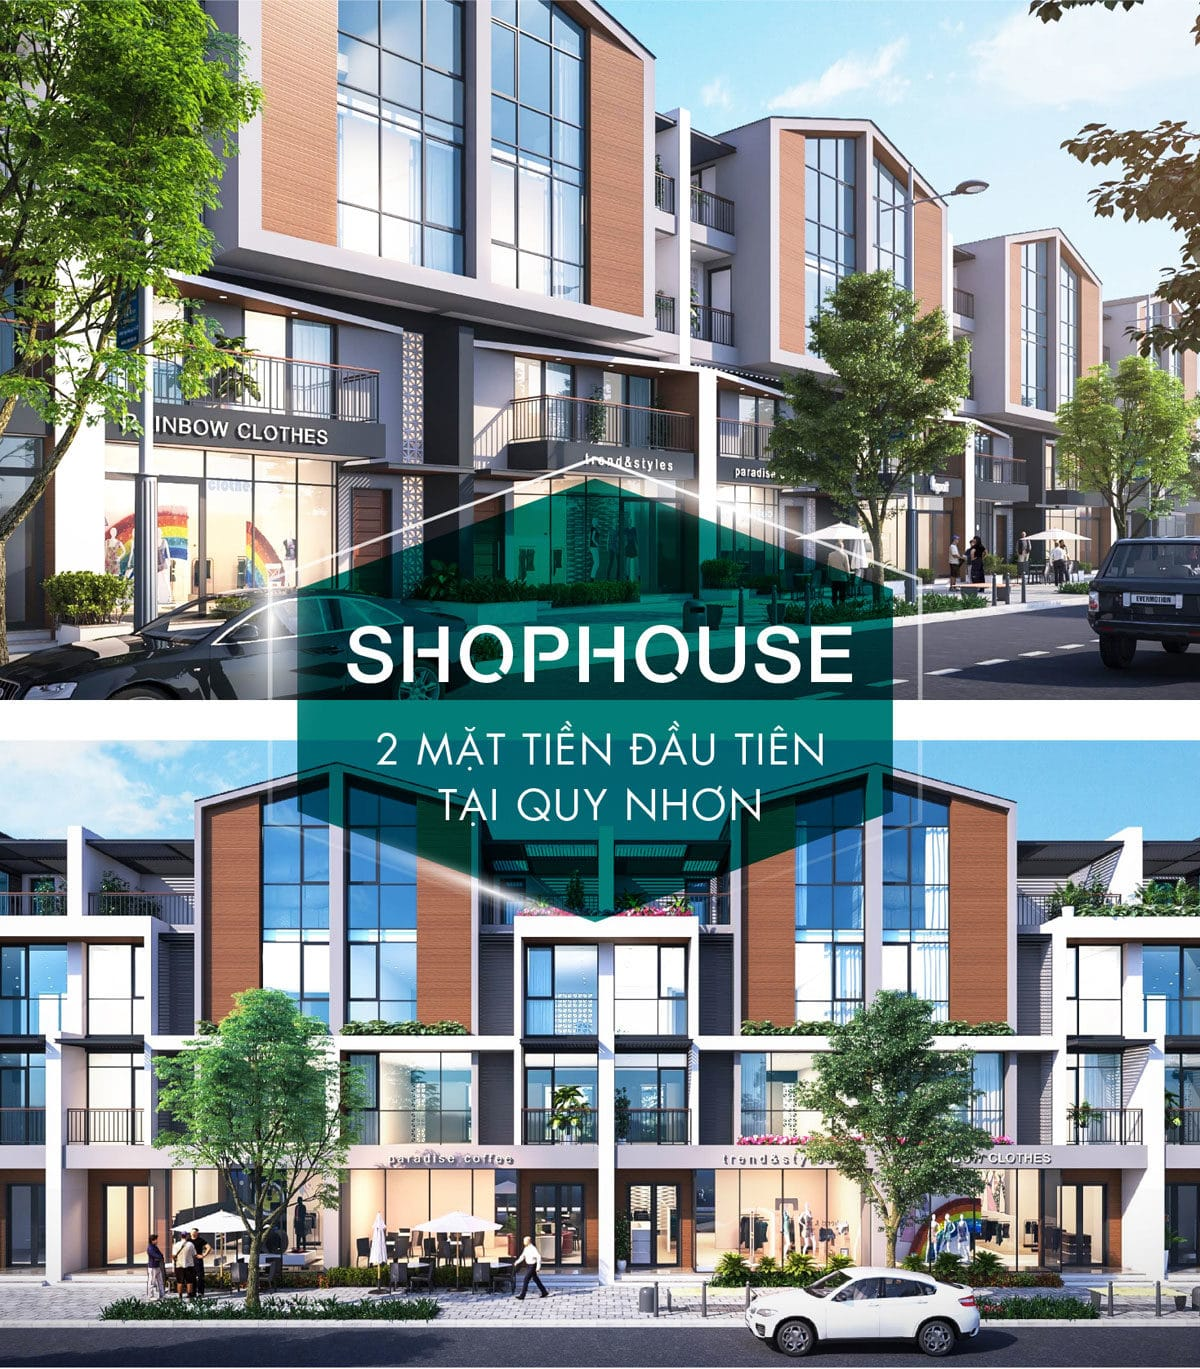 shophouse FLC Miami District - DỰ ÁN FLC MIAMI DISTRICT QUY NHƠN